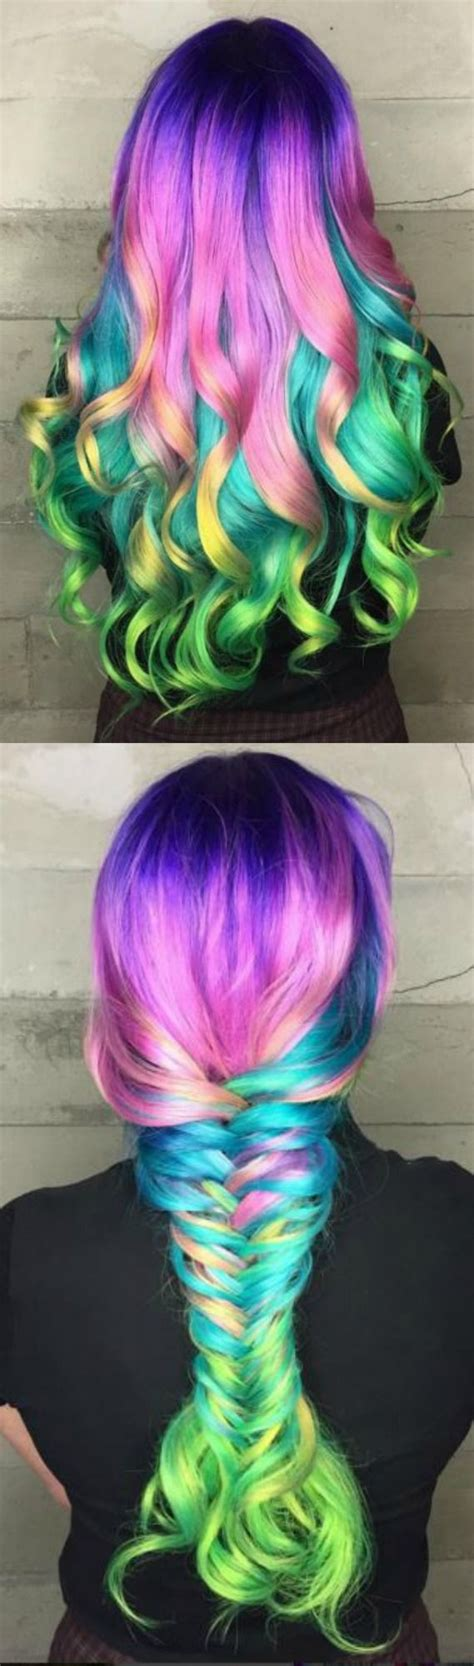 1000 Ideas About Unicorn Hair On Pinterest Unicorn Hair